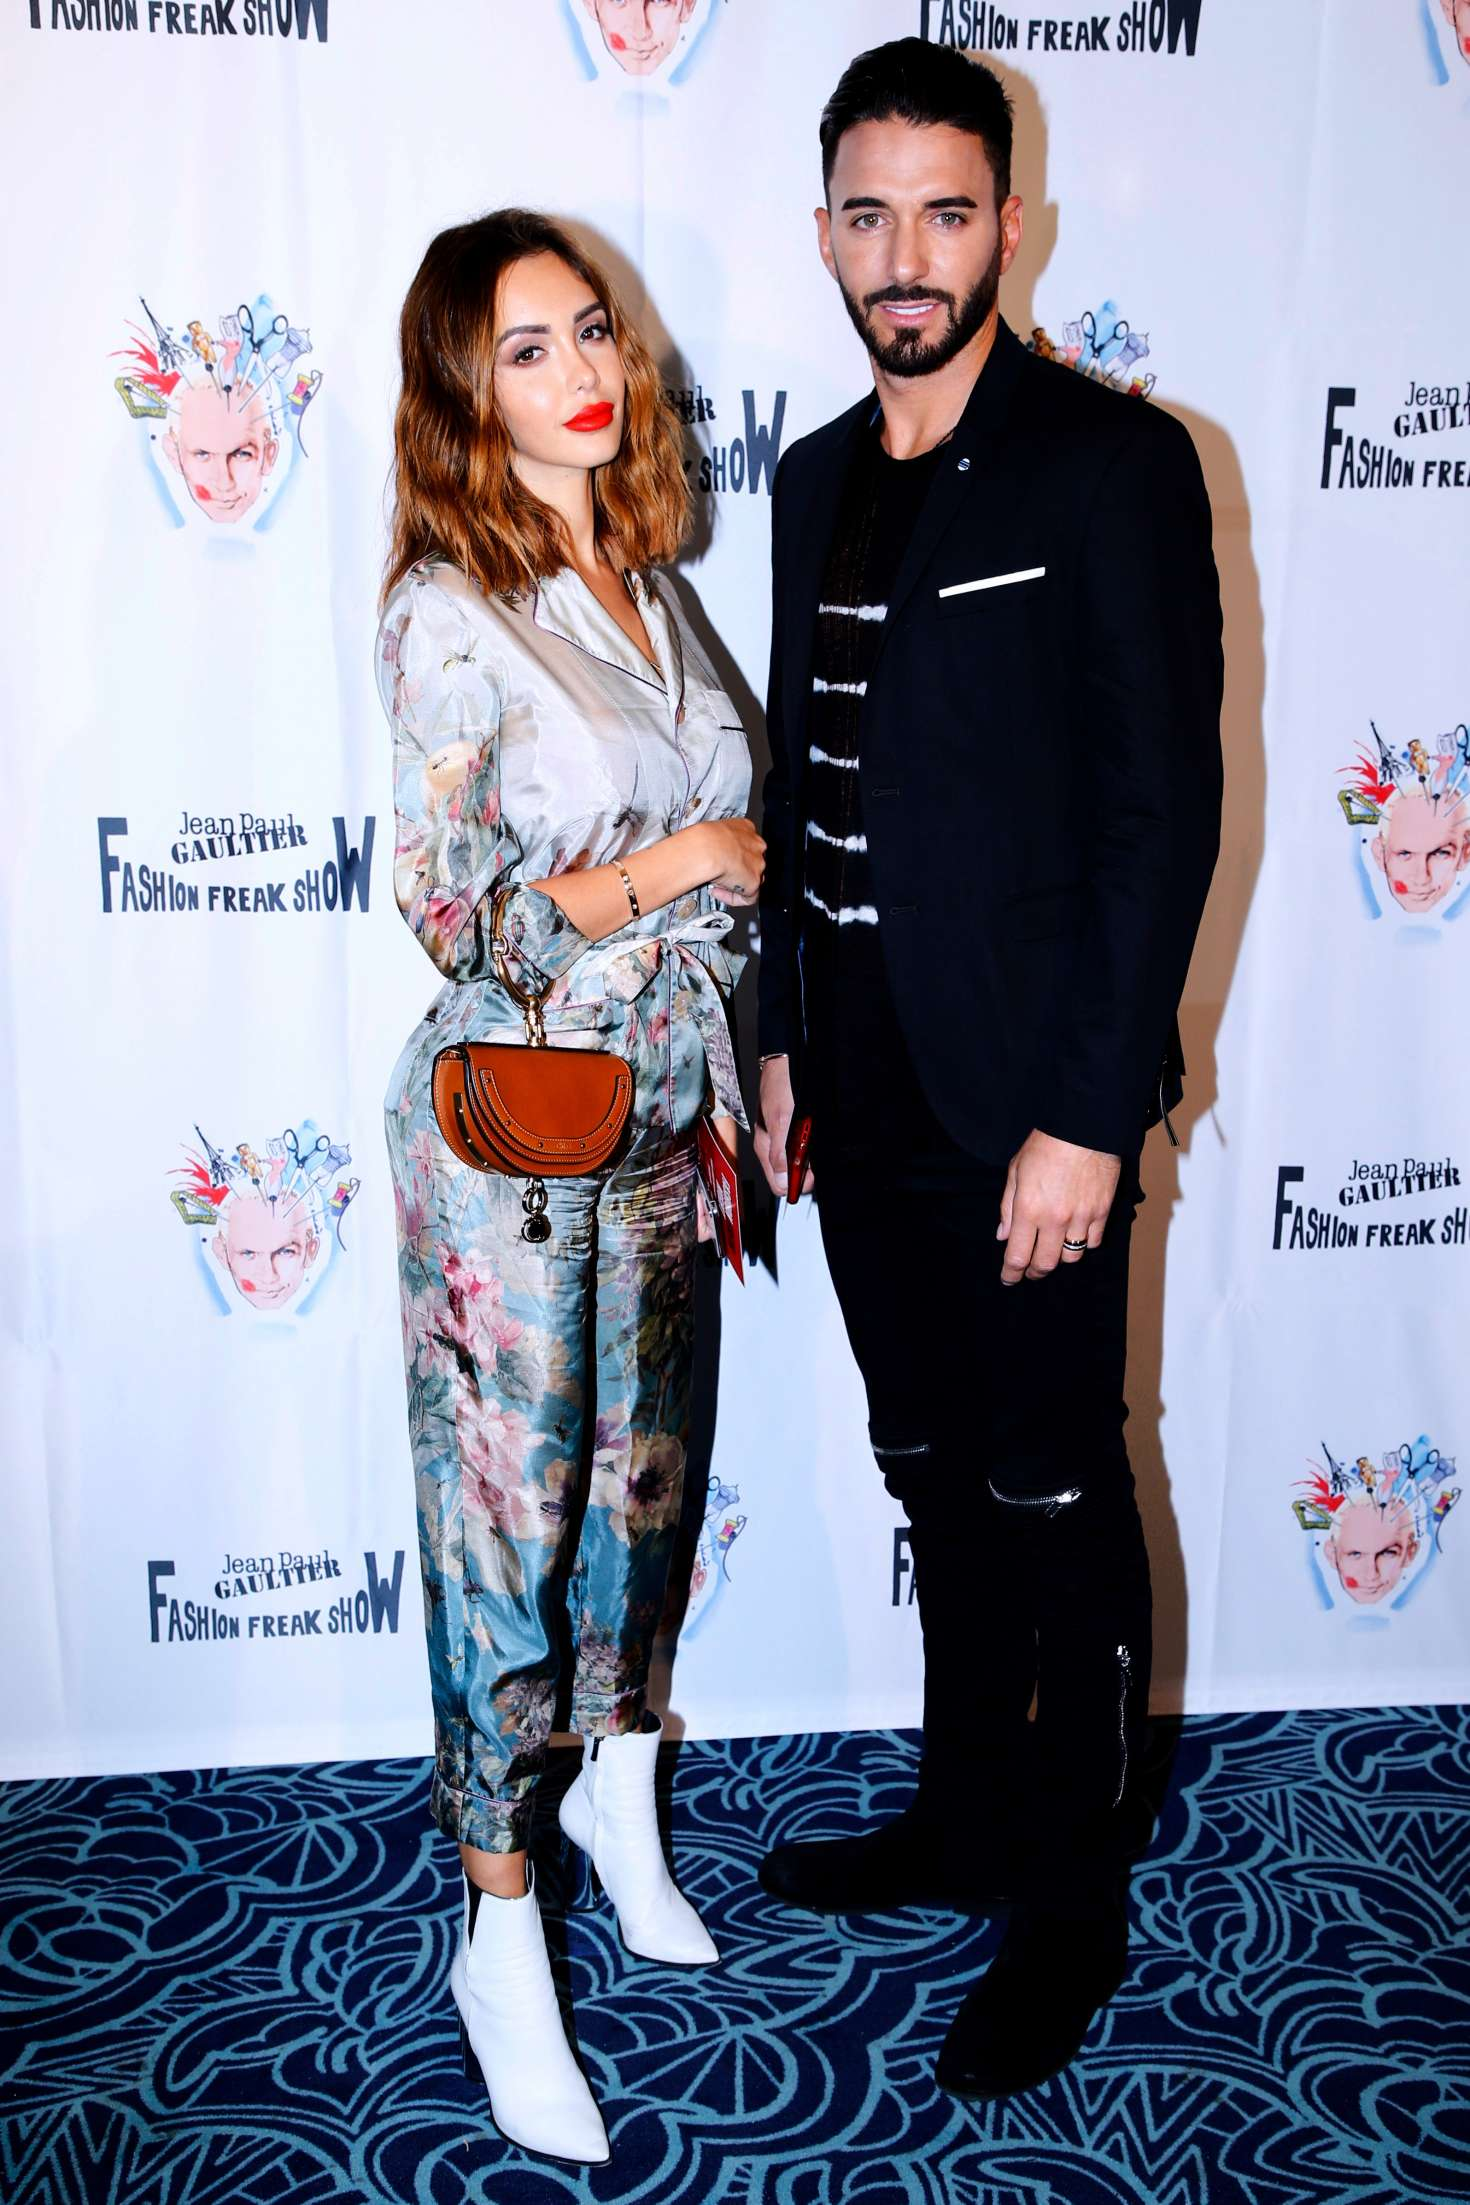 Nabilla Benattia 2018 : Nabilla Benattia: Fashion Freak Show in Paris -02